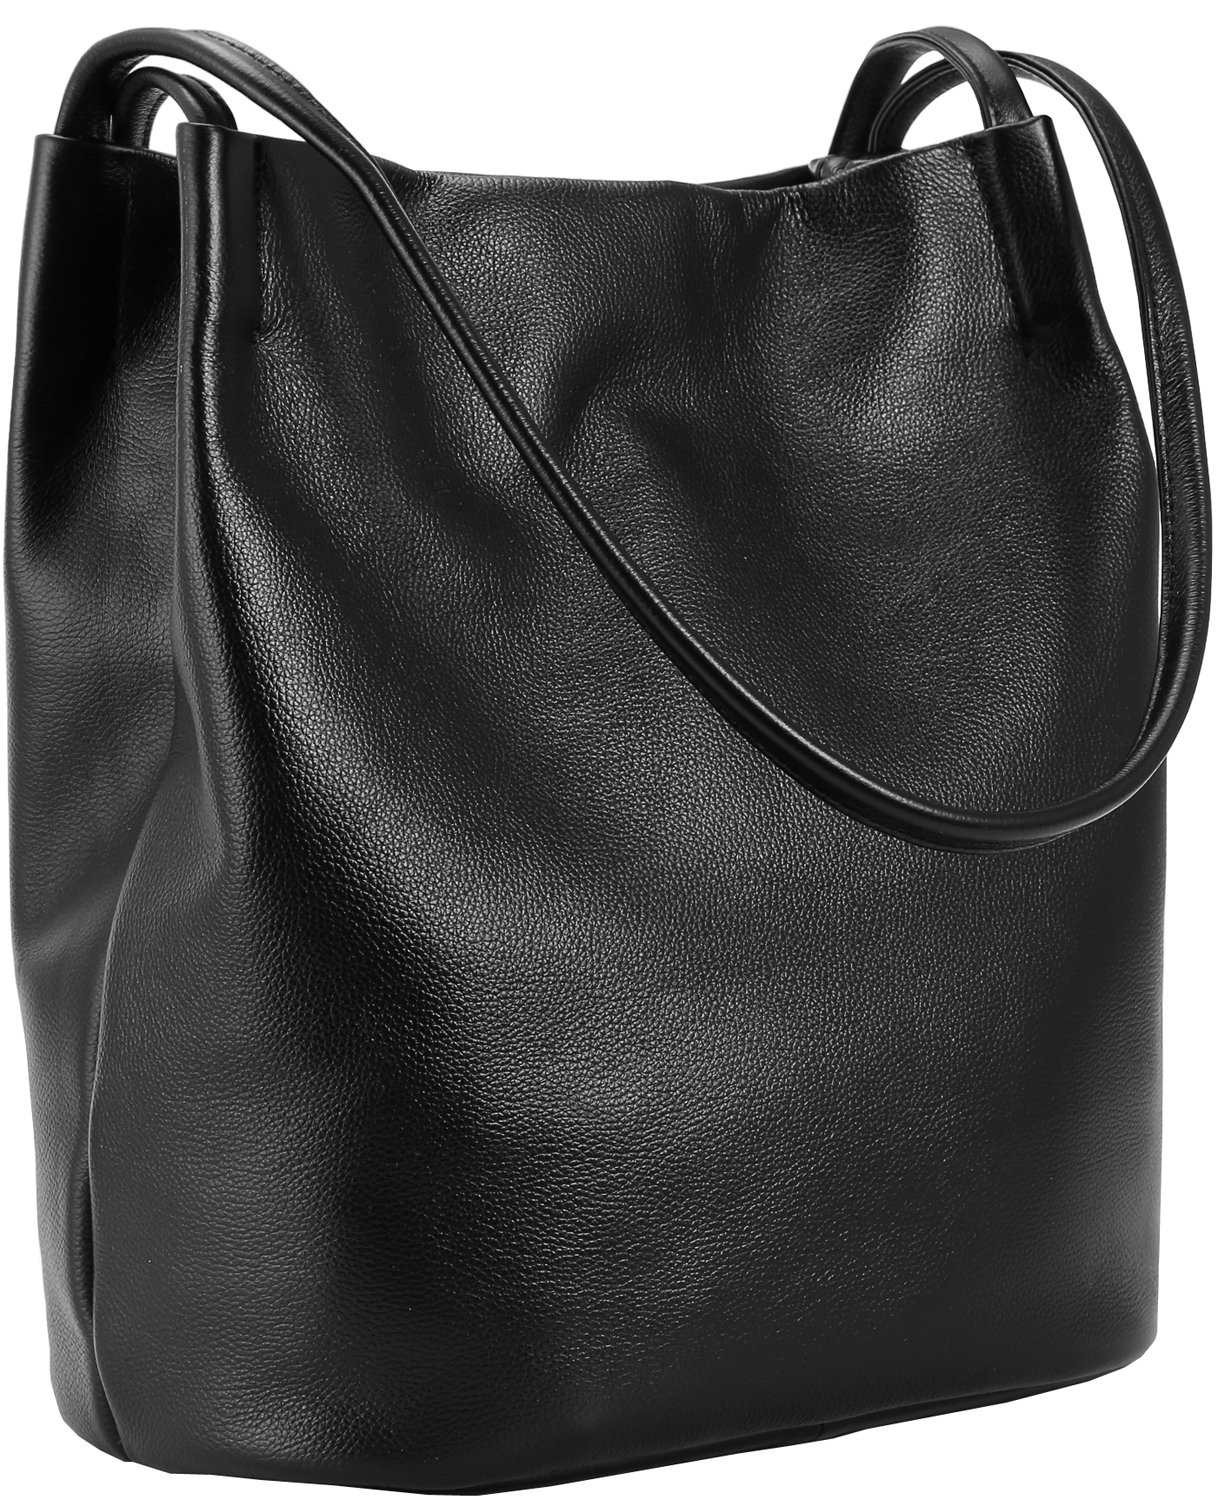 Iswee Leather Shoulder Bag Bucket Bag Hobo Lady Handbag and Purse Fashion Tote for Women (Black)